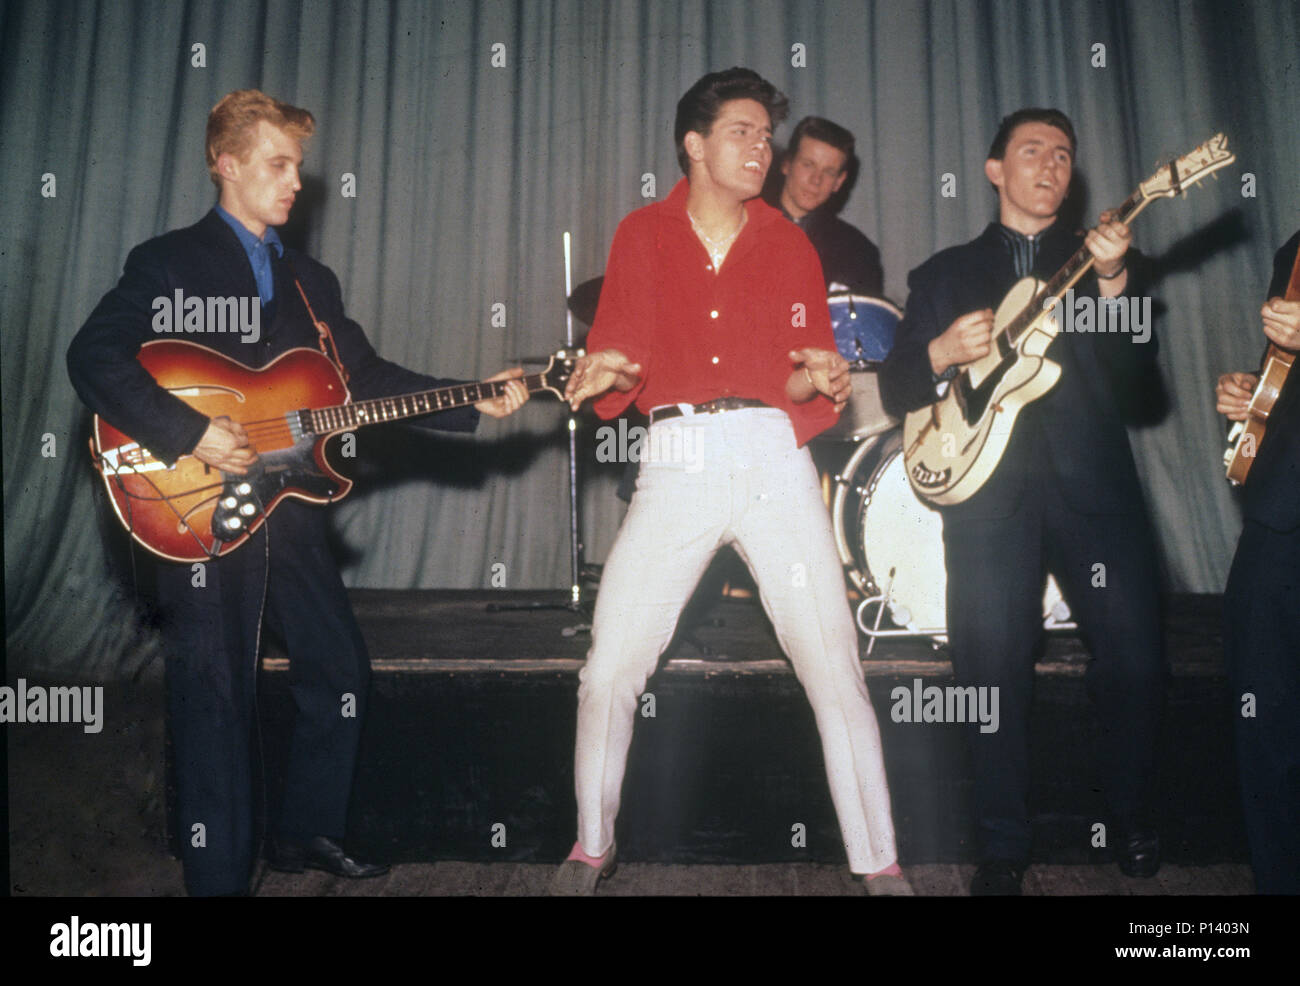 CLIFF RICHARD AND THE SHADOWS about 1960 with from left: Jet Harris, Cliff Richard, Tony Meehan,Bruce Welch - Stock Image